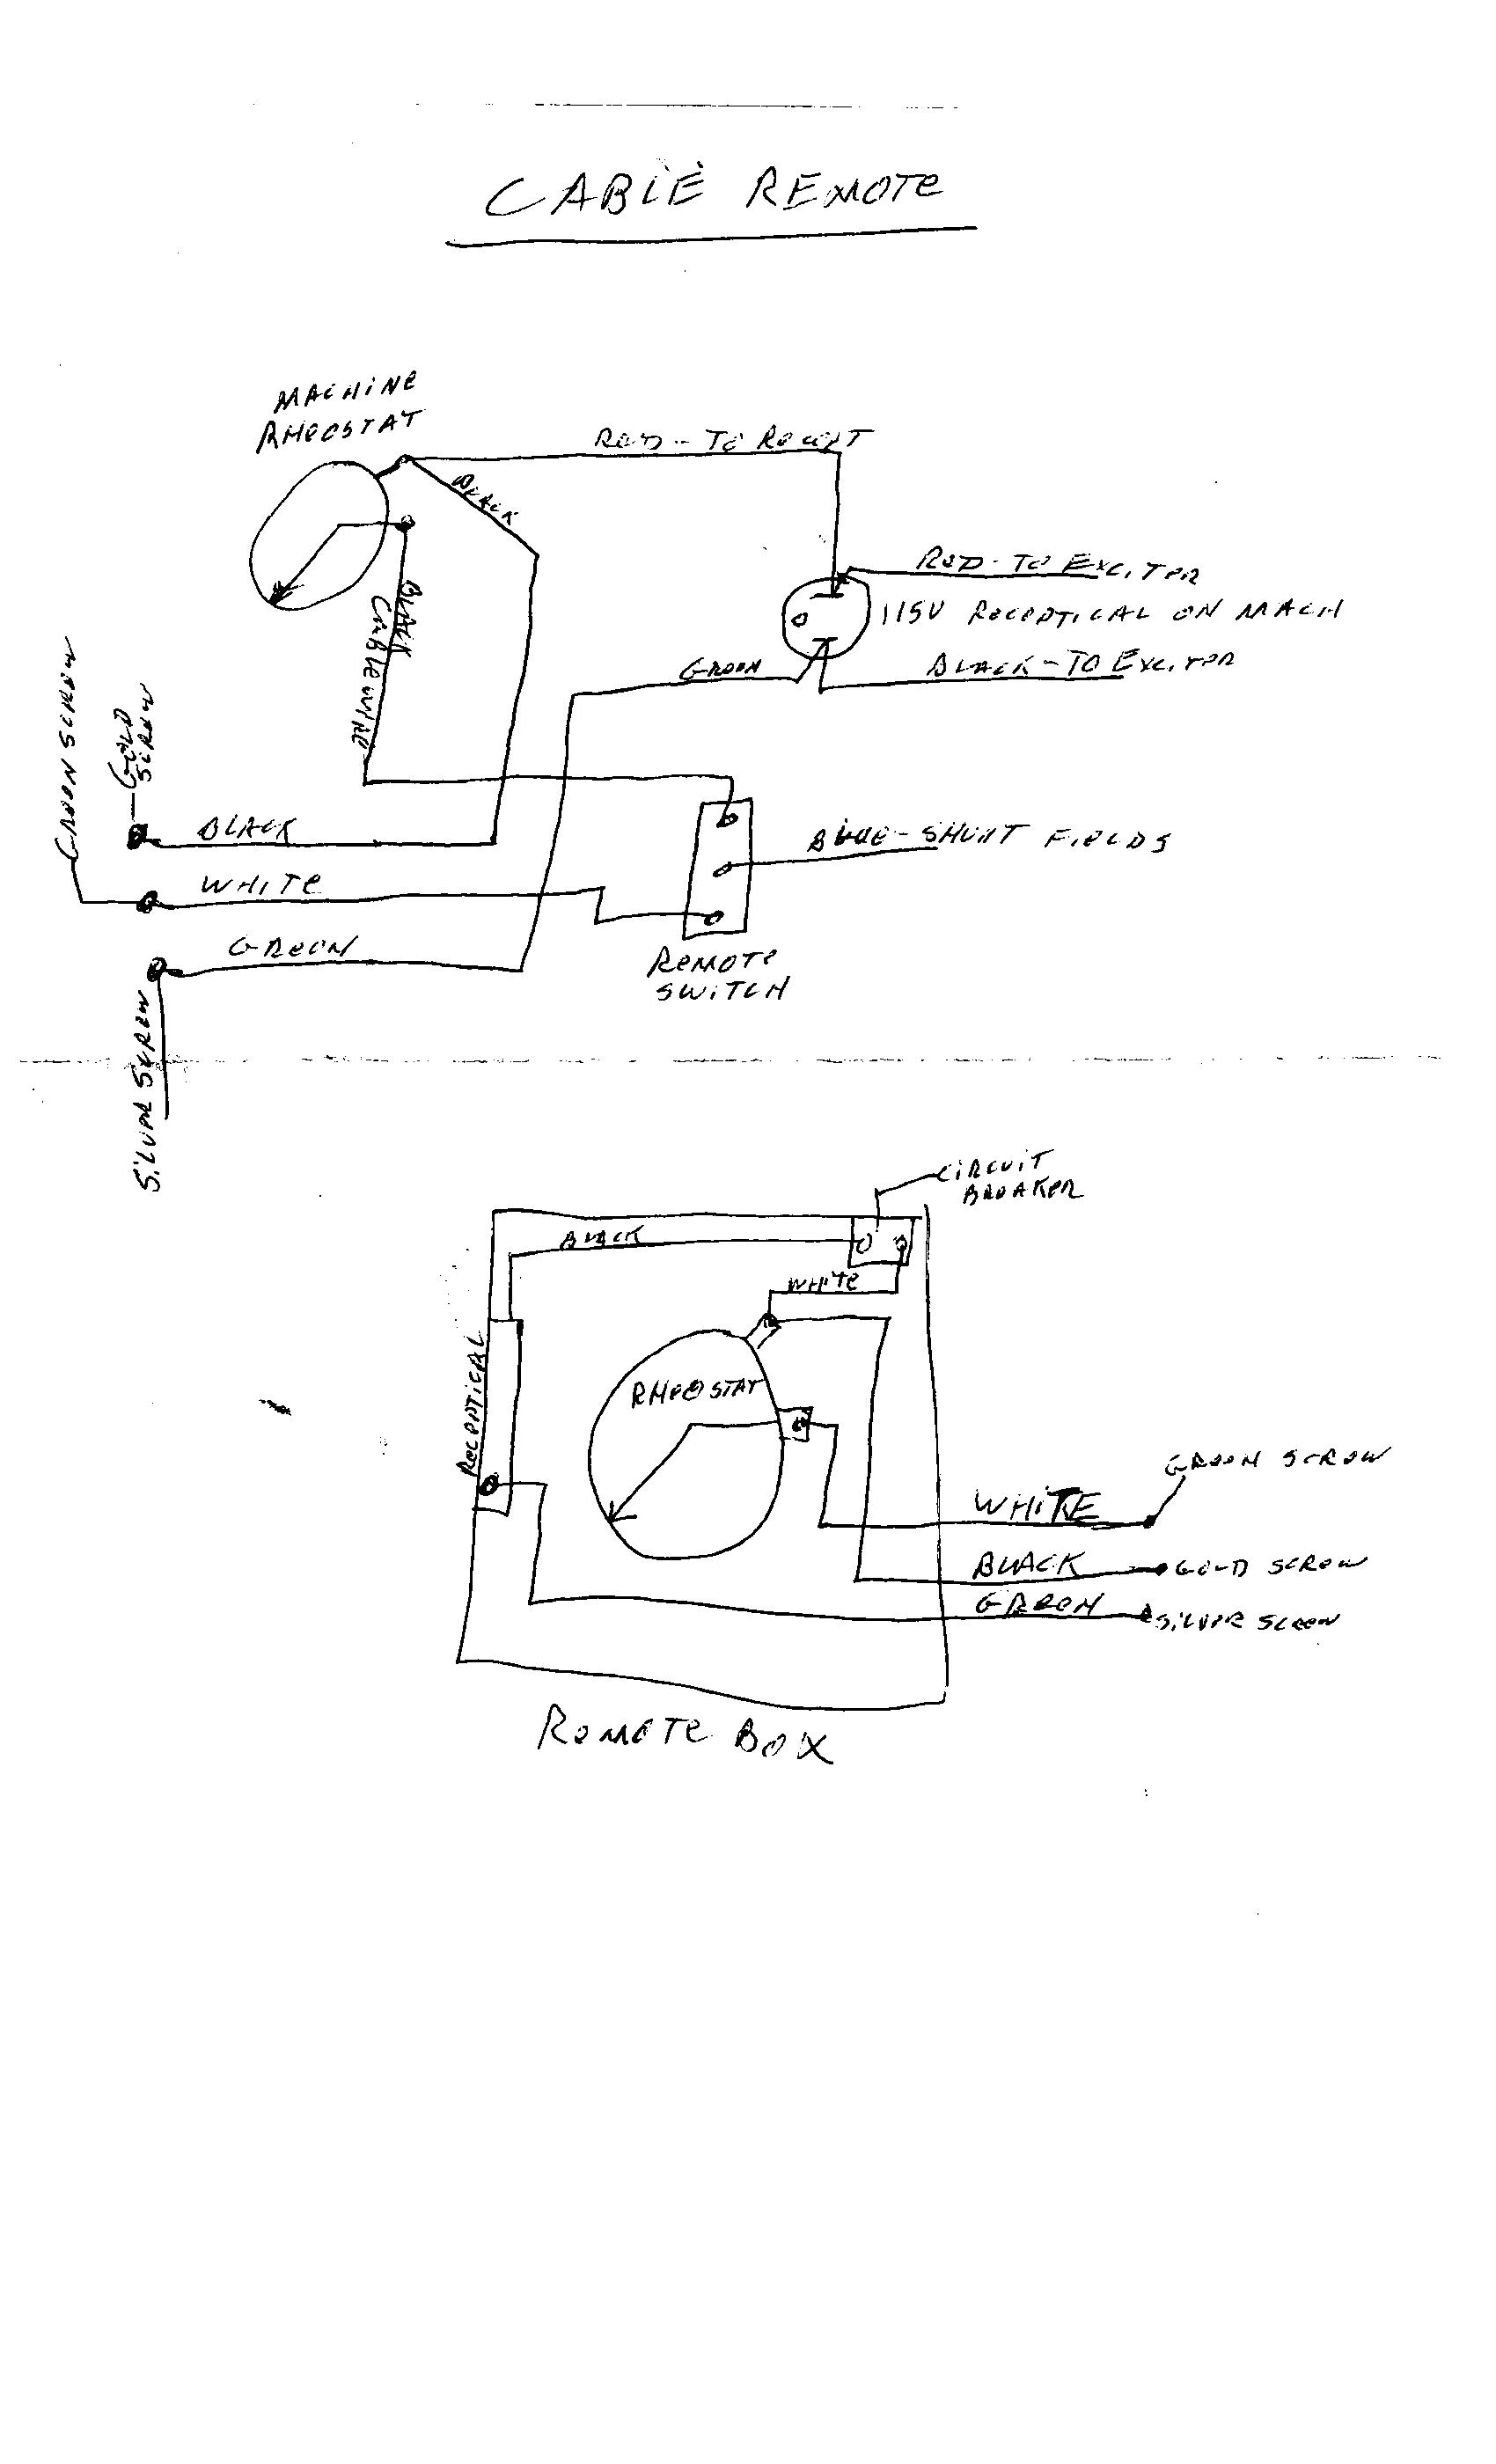 lincoln sa 200 generator wiring diagram for generator harley HVAC Schematic 1997 Lincoln Continental lincoln sa 200 remote diagram wiring diagram for you miller 250 mig welder wiring diagram lincoln welder sa 200 remote wiring diagram